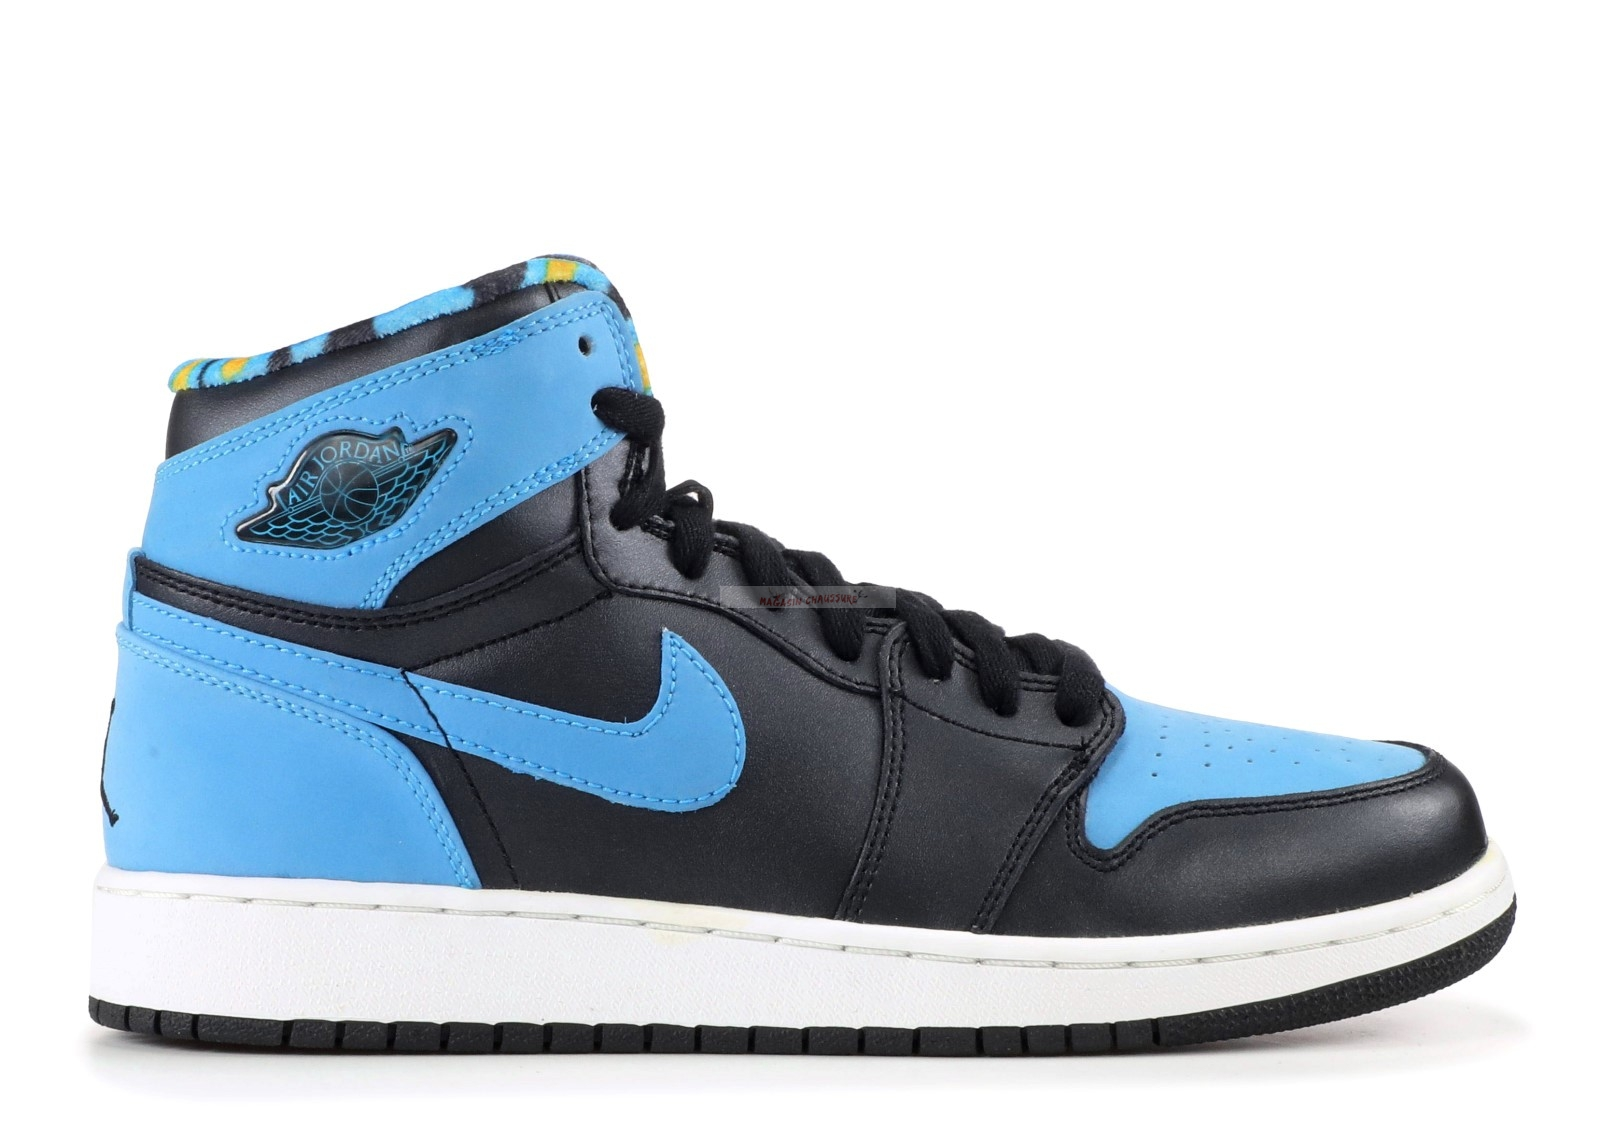 Air Jordan 1 Retro High (Gs) Noir Bleu (332148-041) Chaussure de Basket